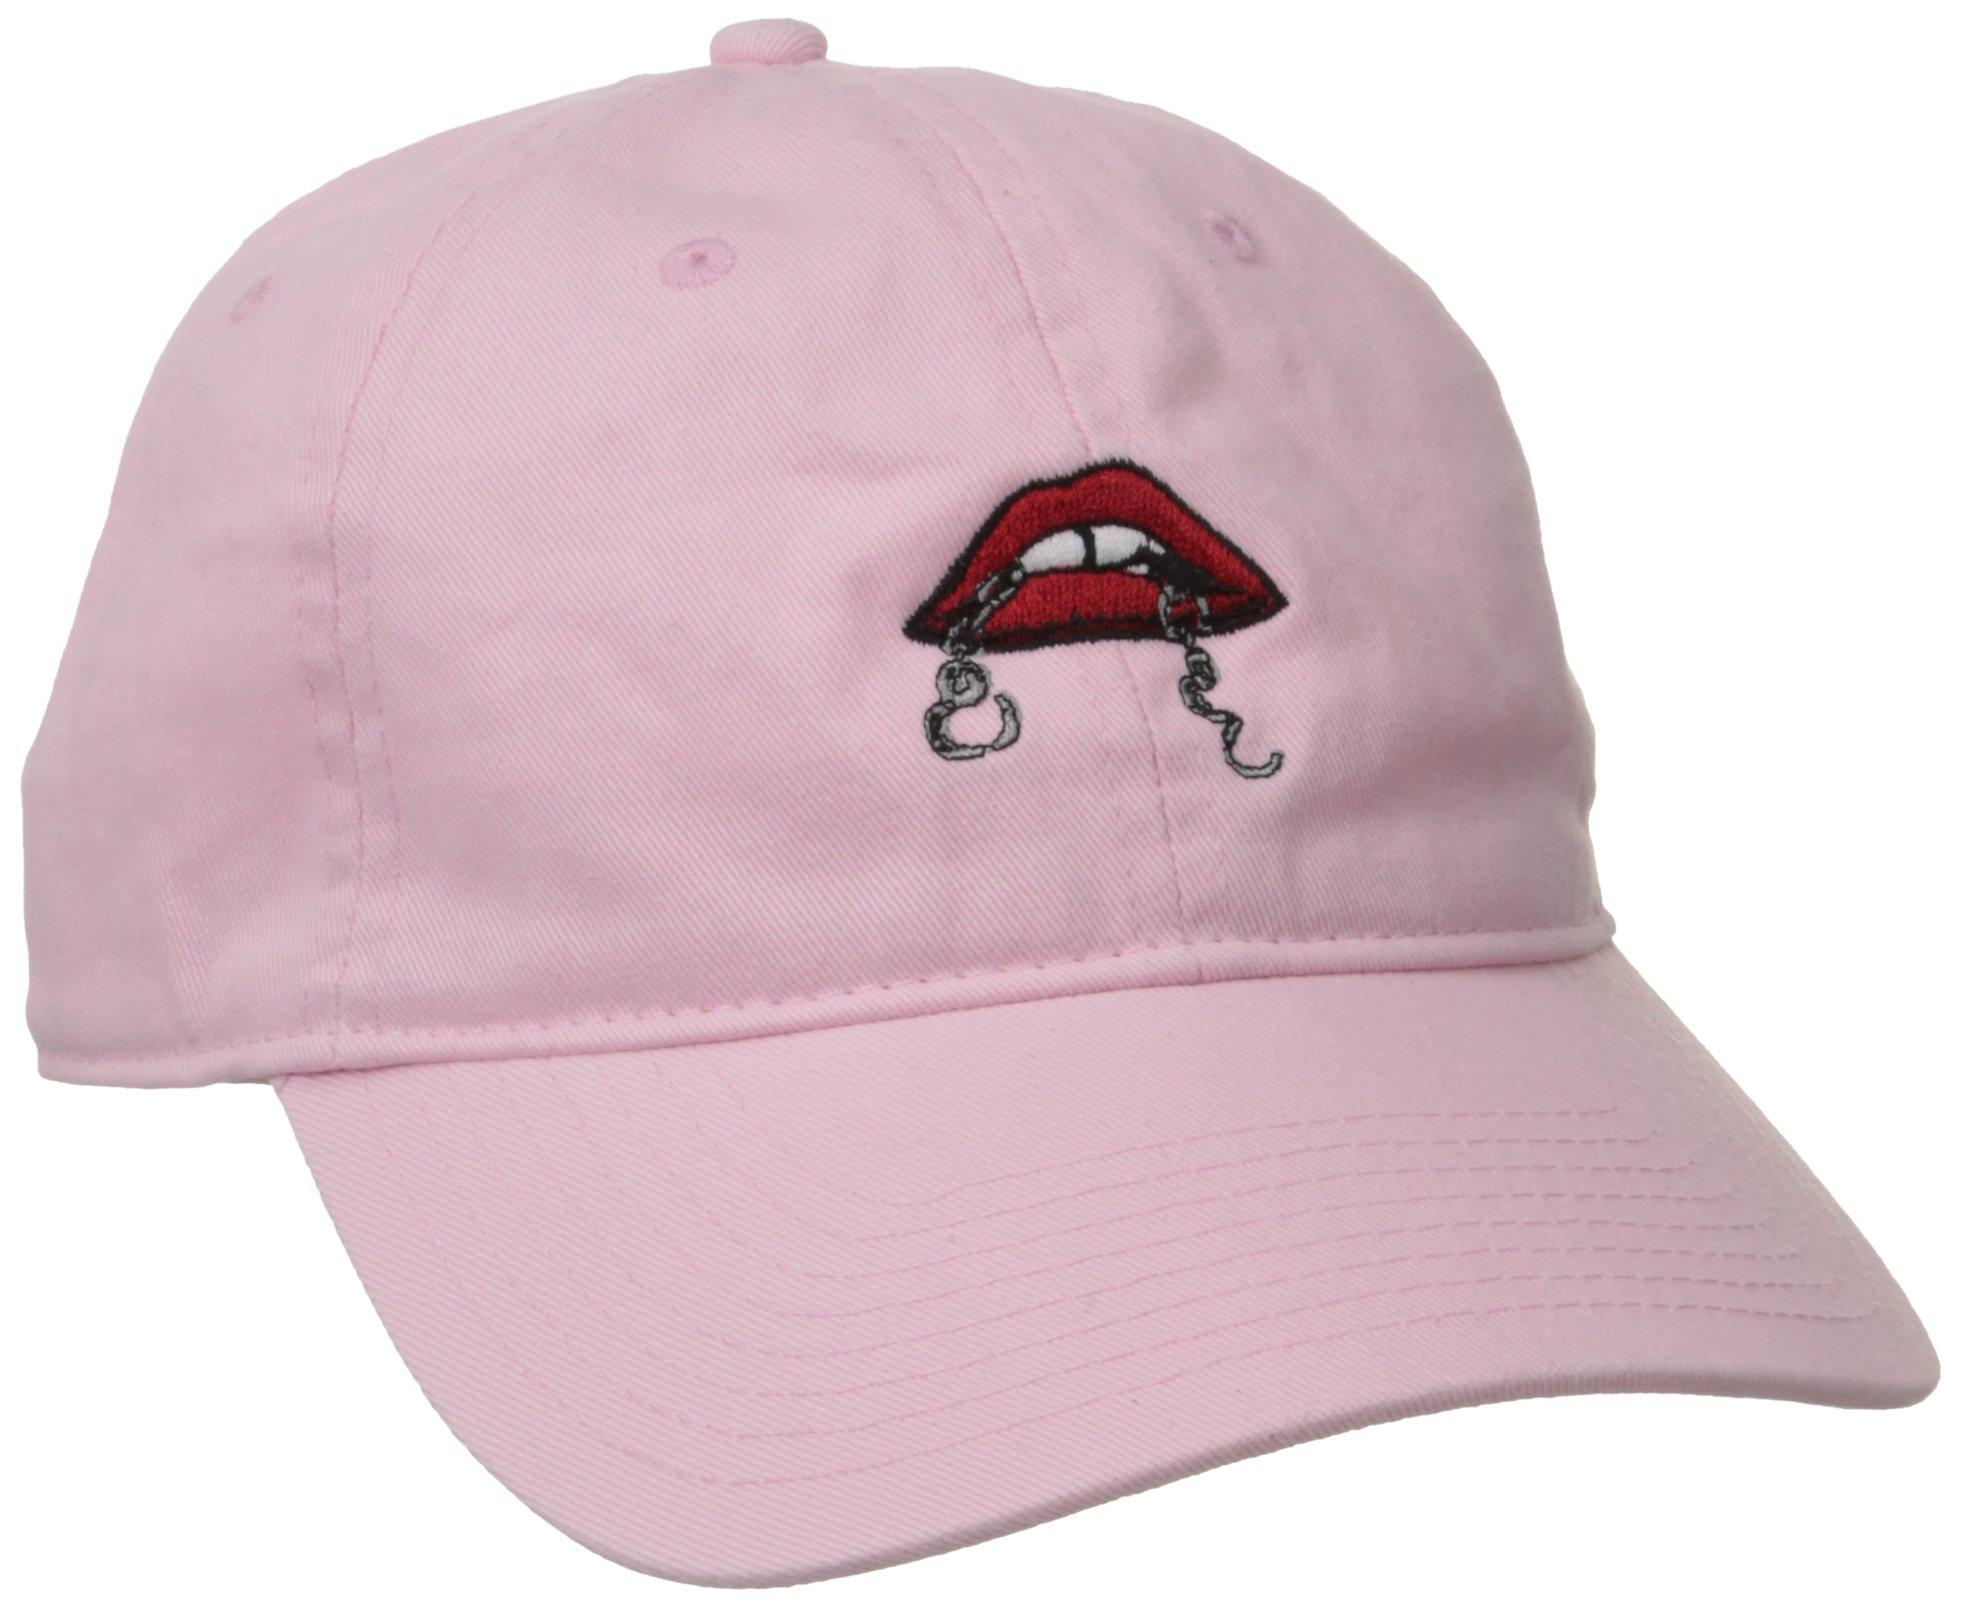 Obey Women's Tough Love Dad Hat, Light Pink, One Size